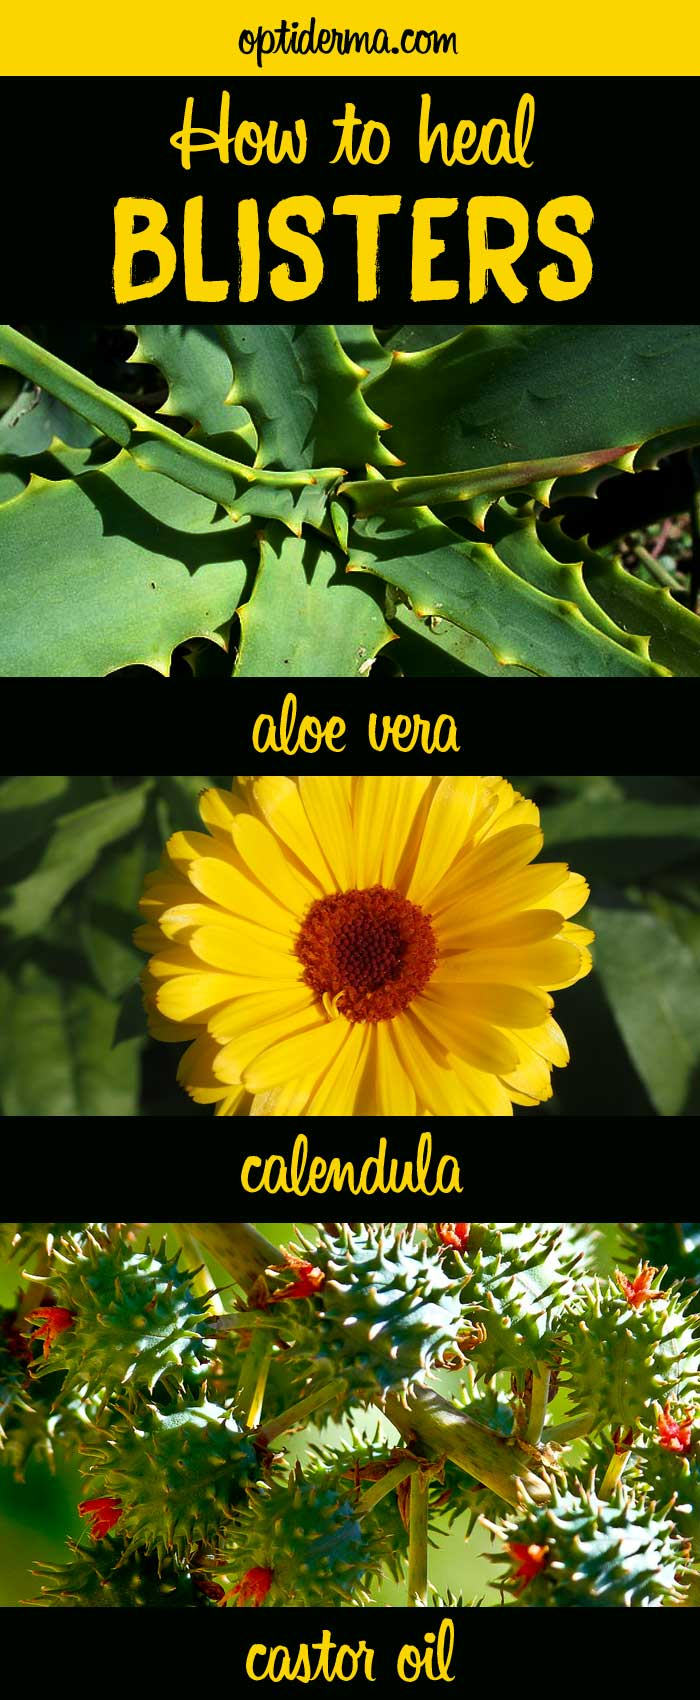 How to Heal Blisters with Calendula, Aloe Vera or Castor Oil